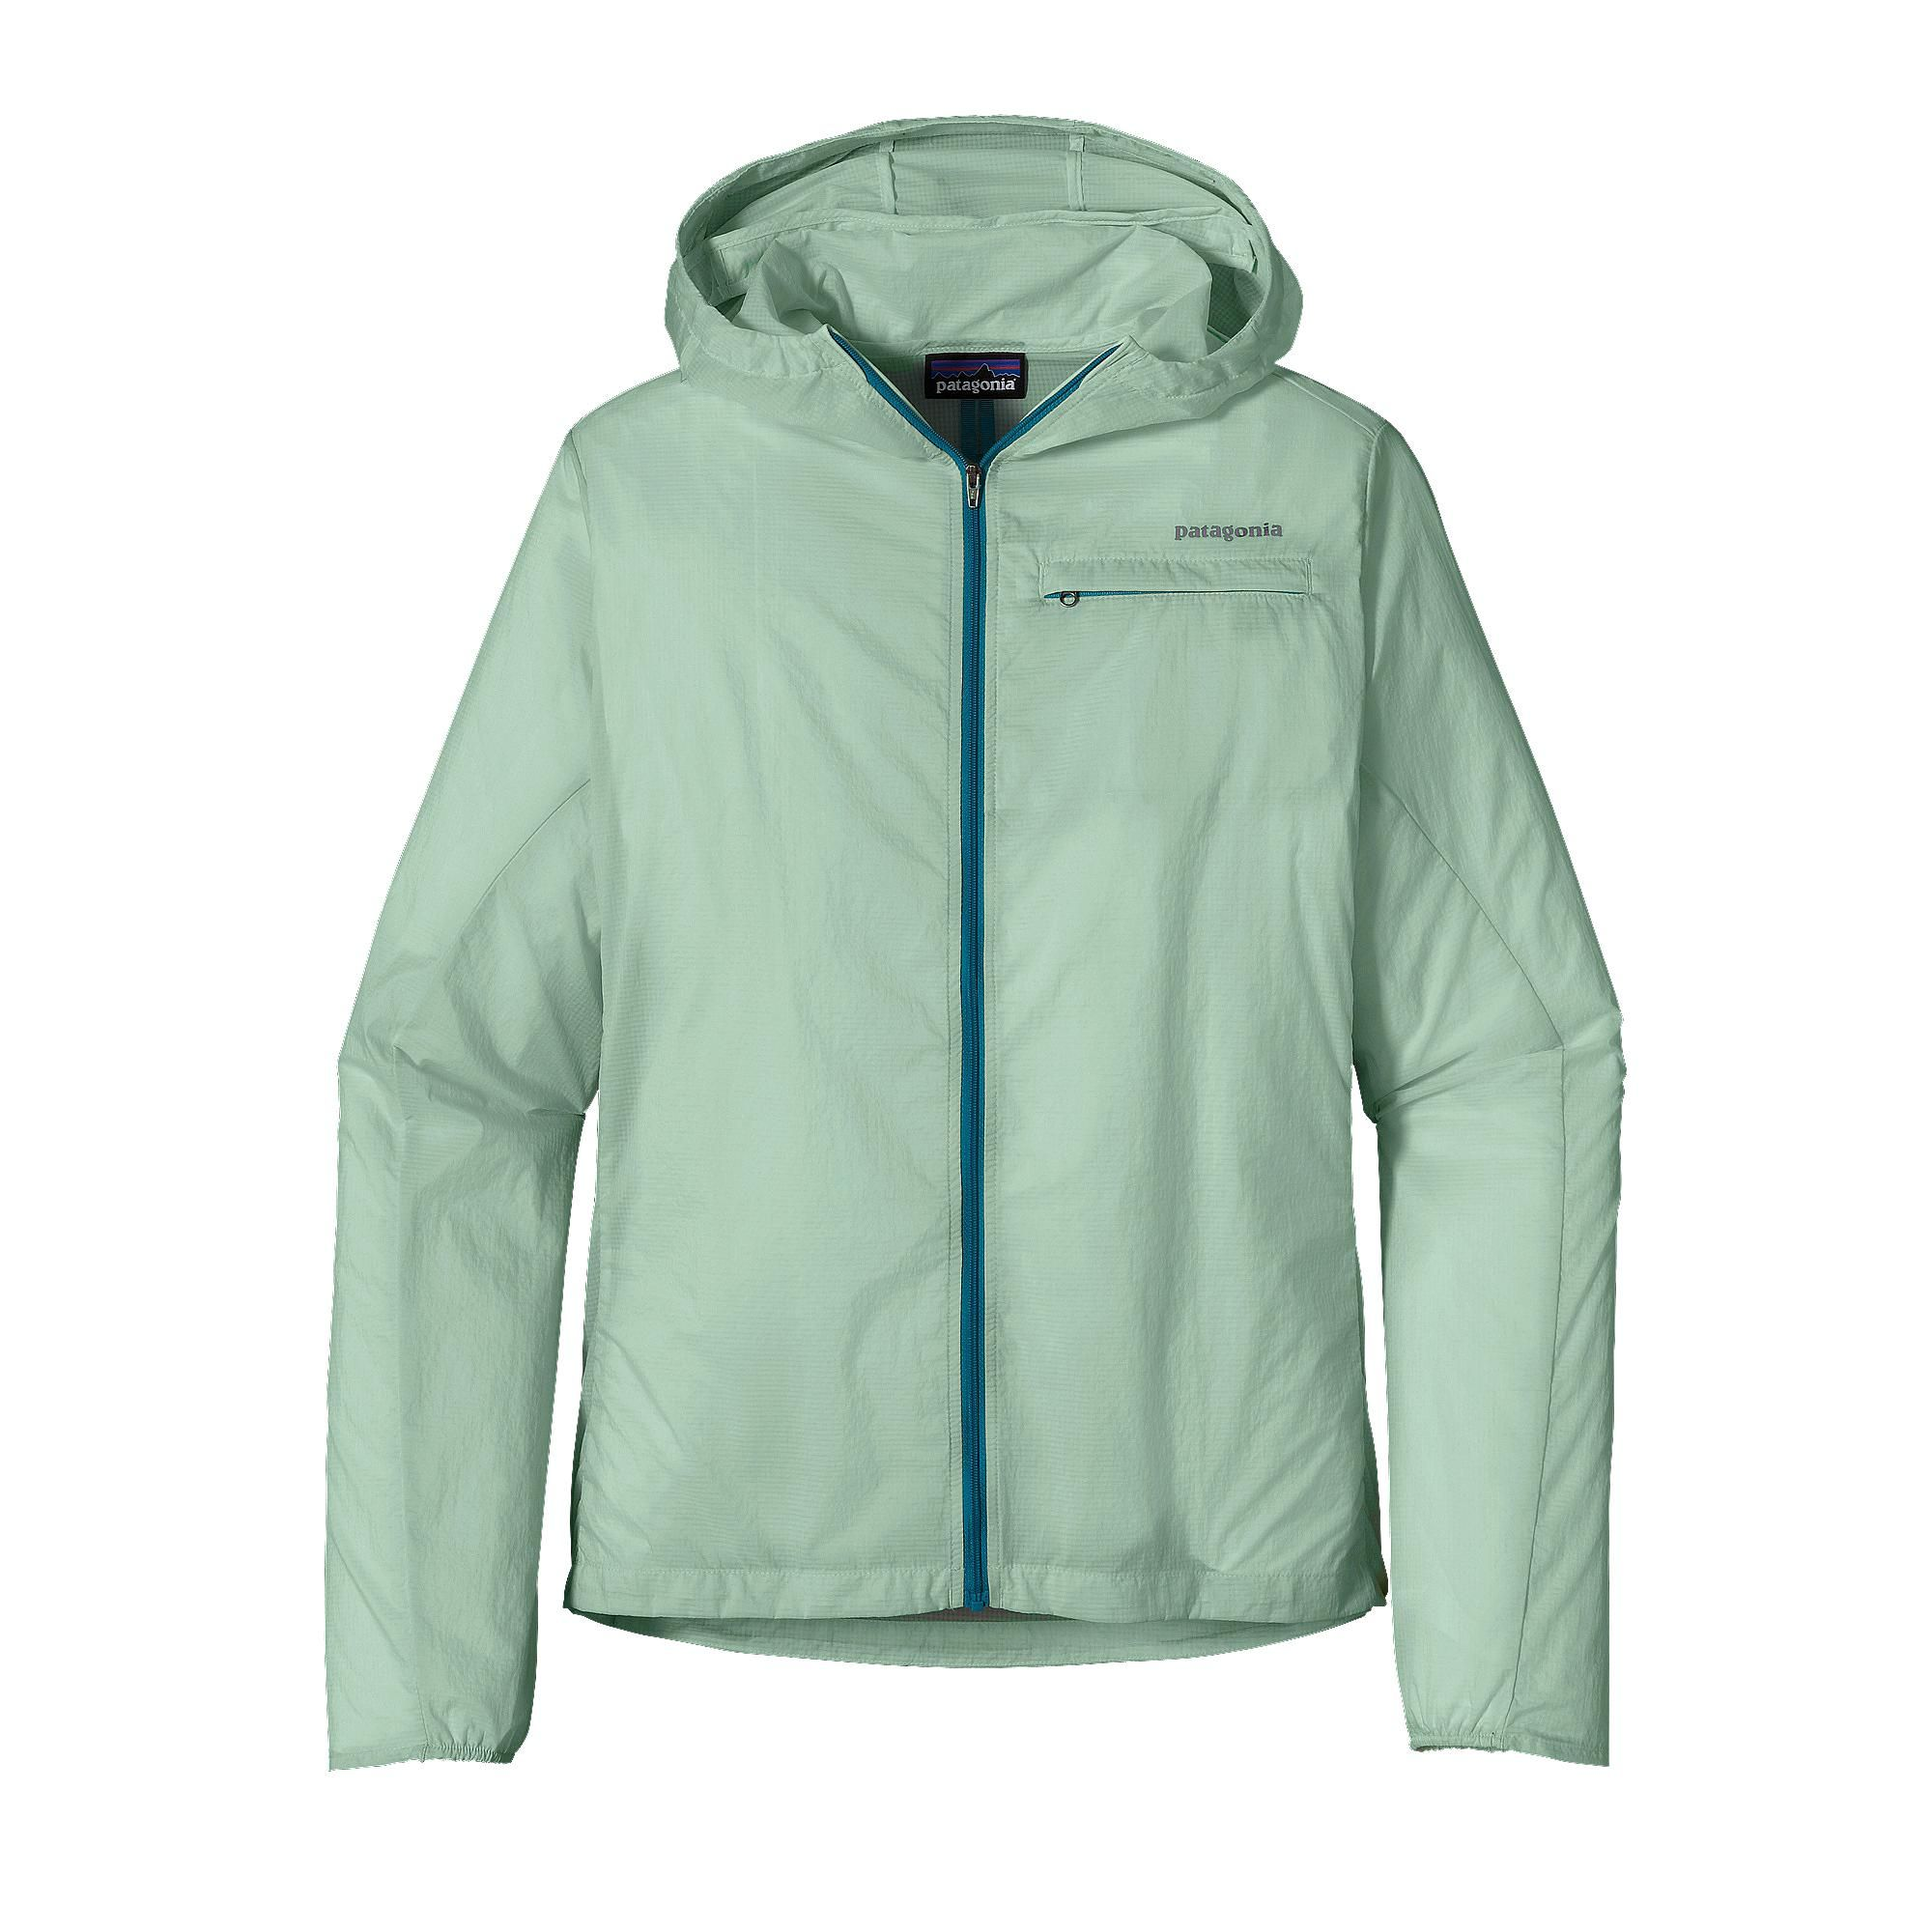 The Patagonia Women's Houdini™ Jacket is an ultra